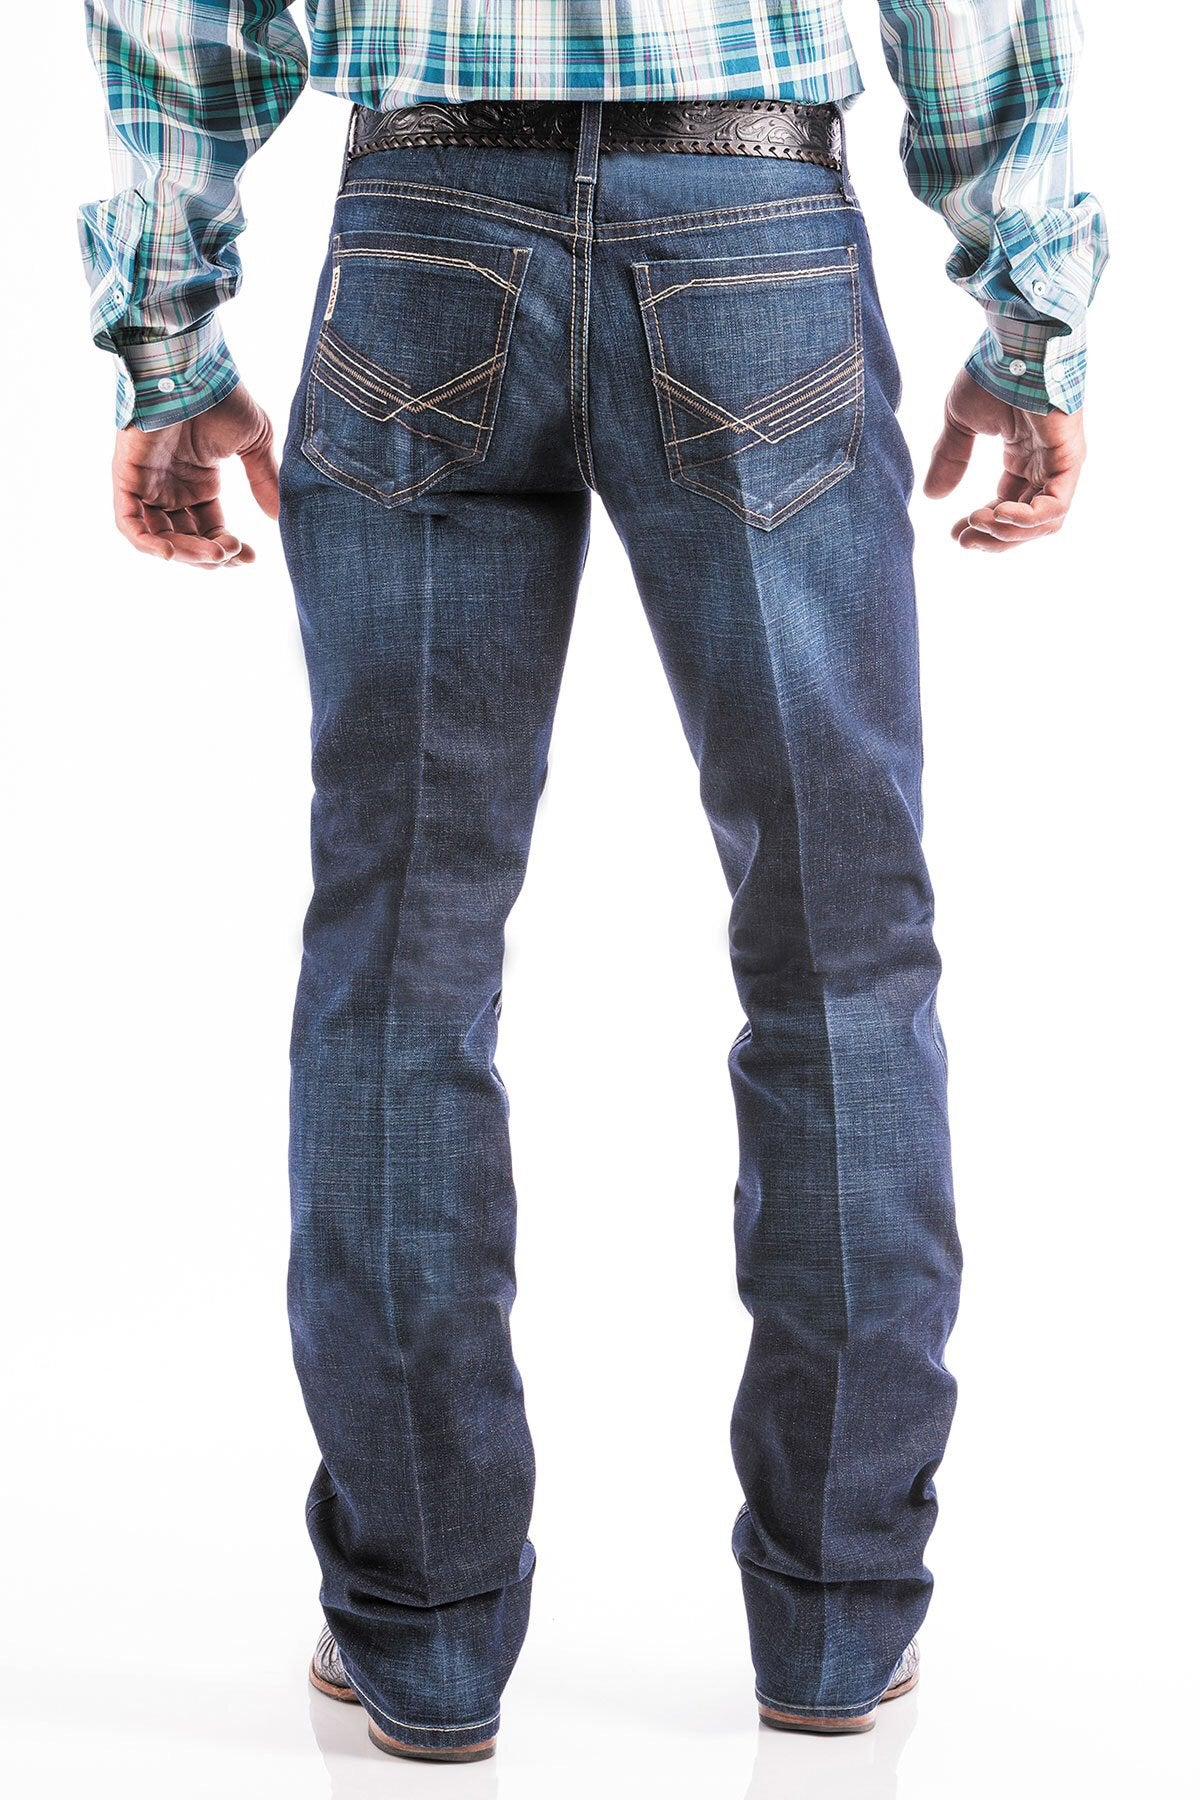 MEN'S CINCH SLIM FIT IAN JEAN MB65436001